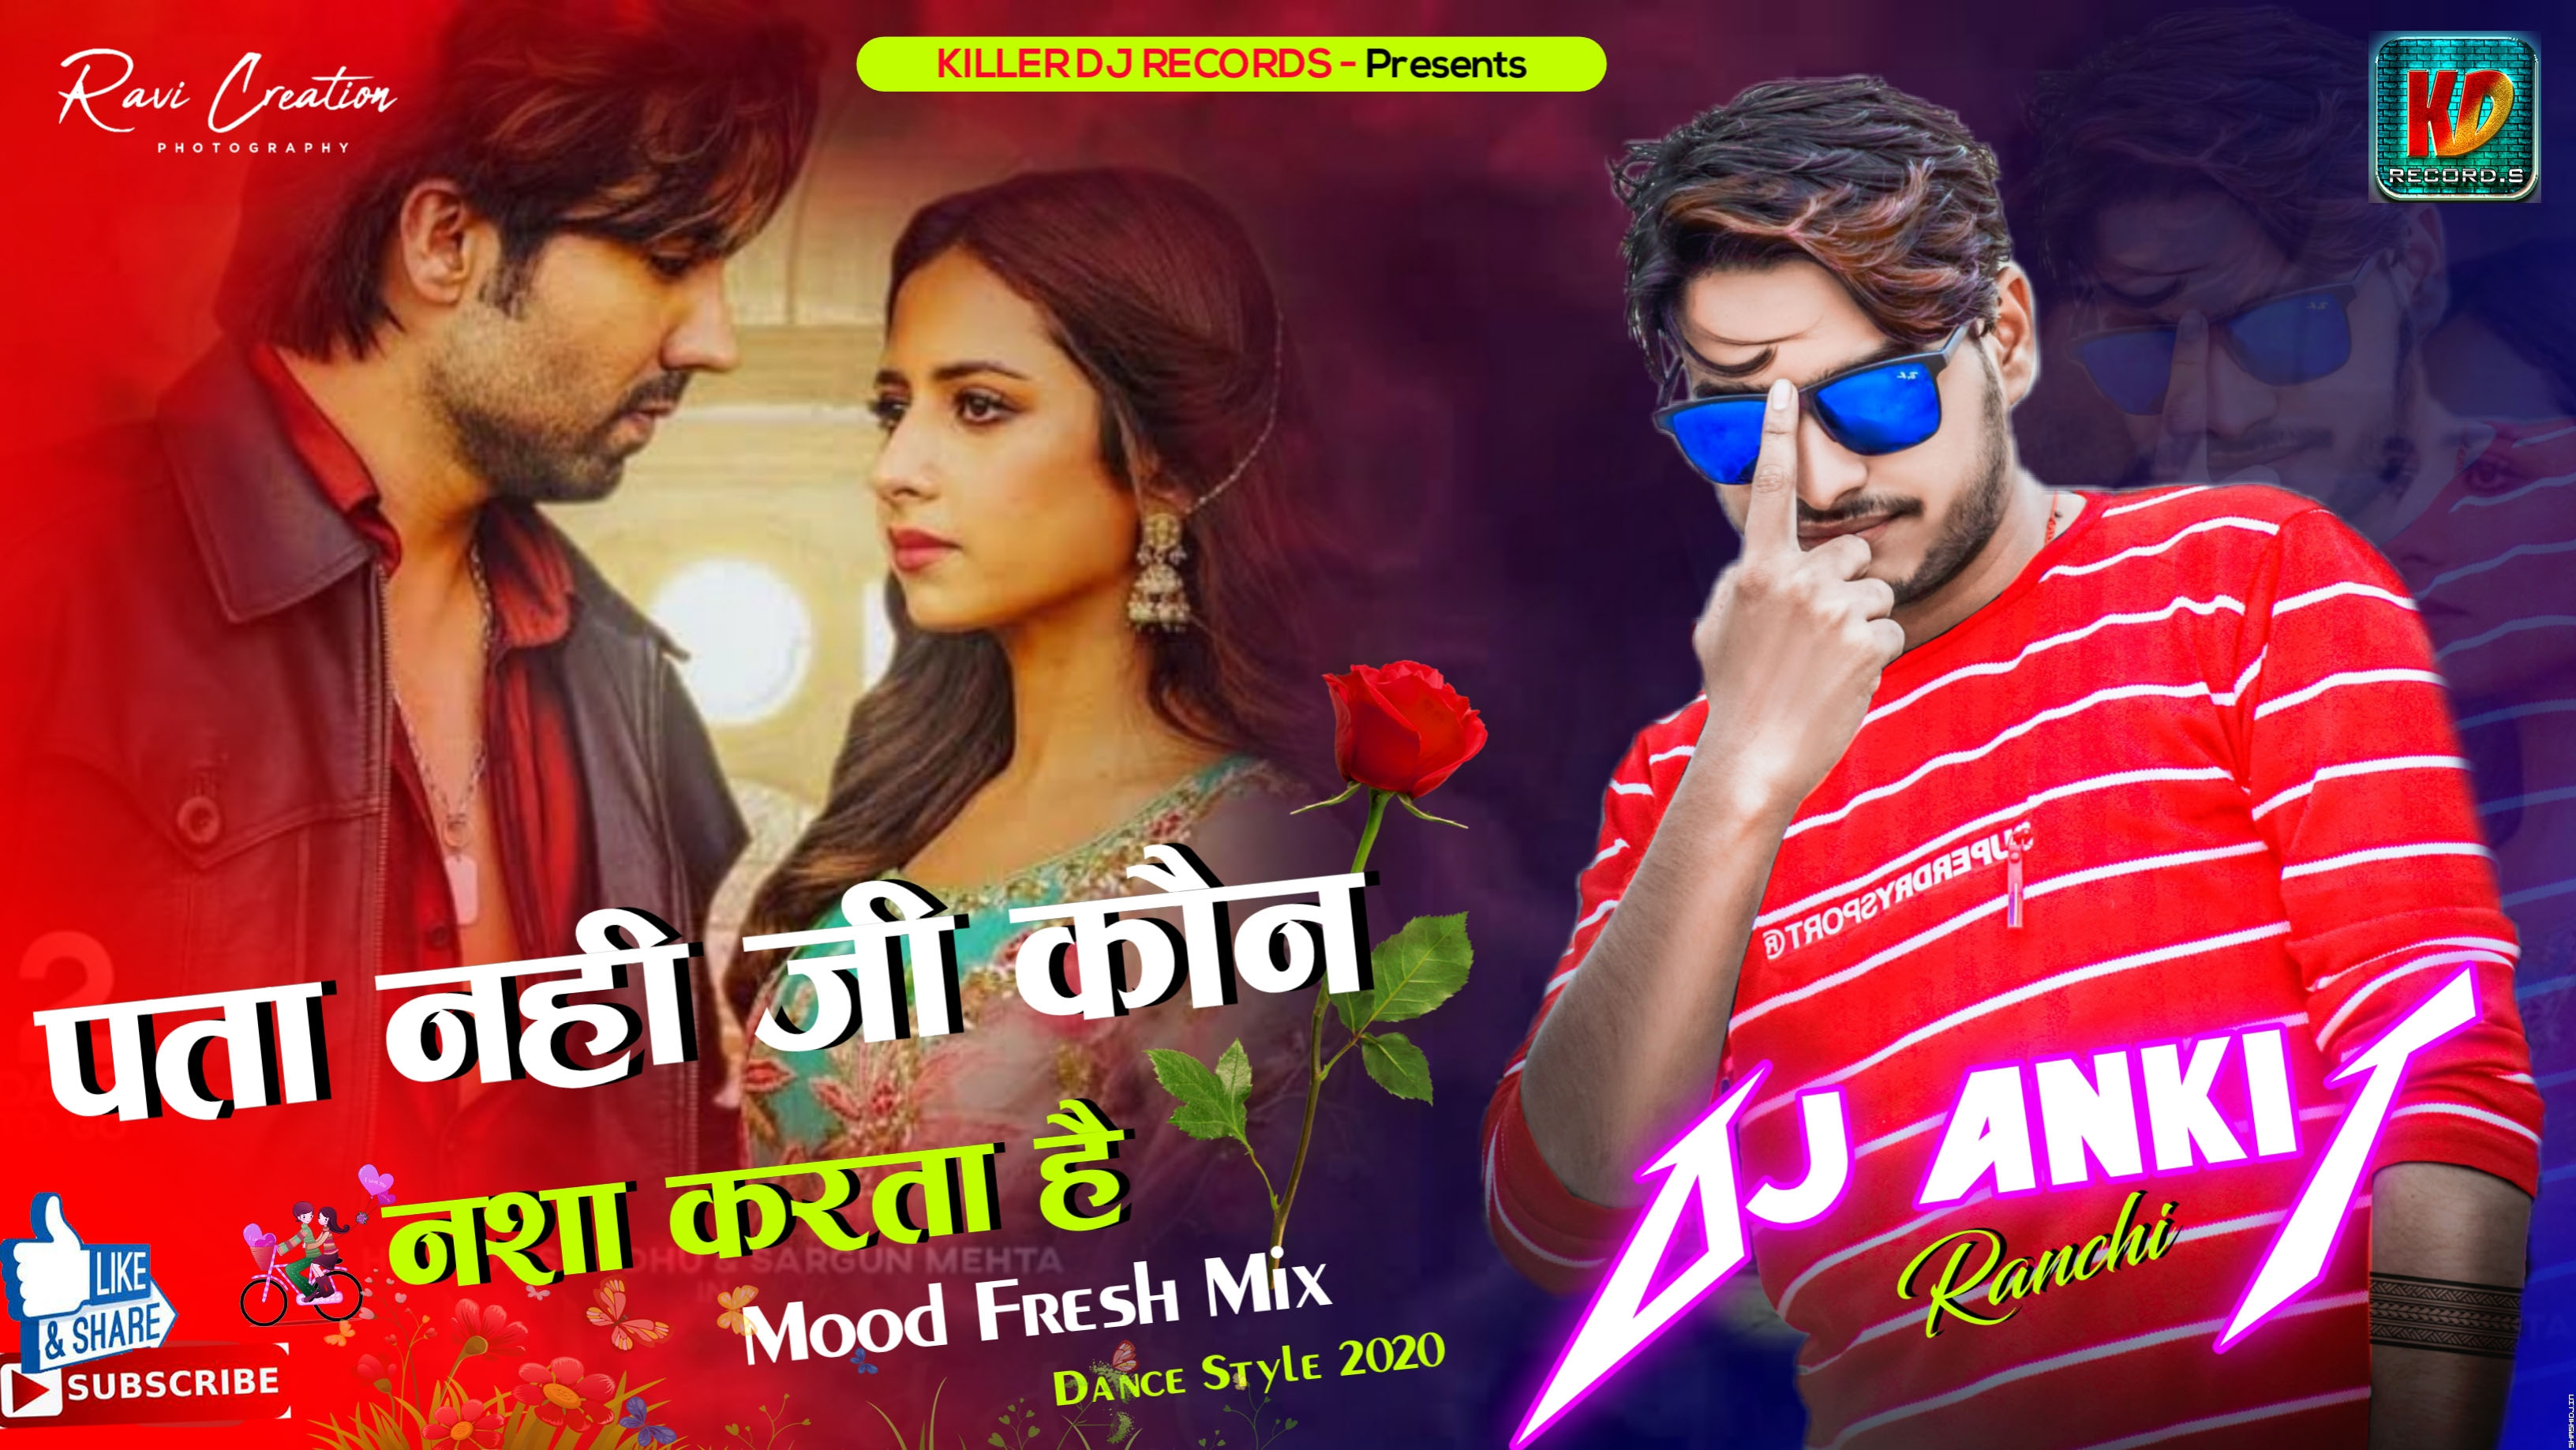 Pata Nahi Ji Konsa Nasha Karta Hai -- Mood Fresh Mix Dj Ankit.mp3